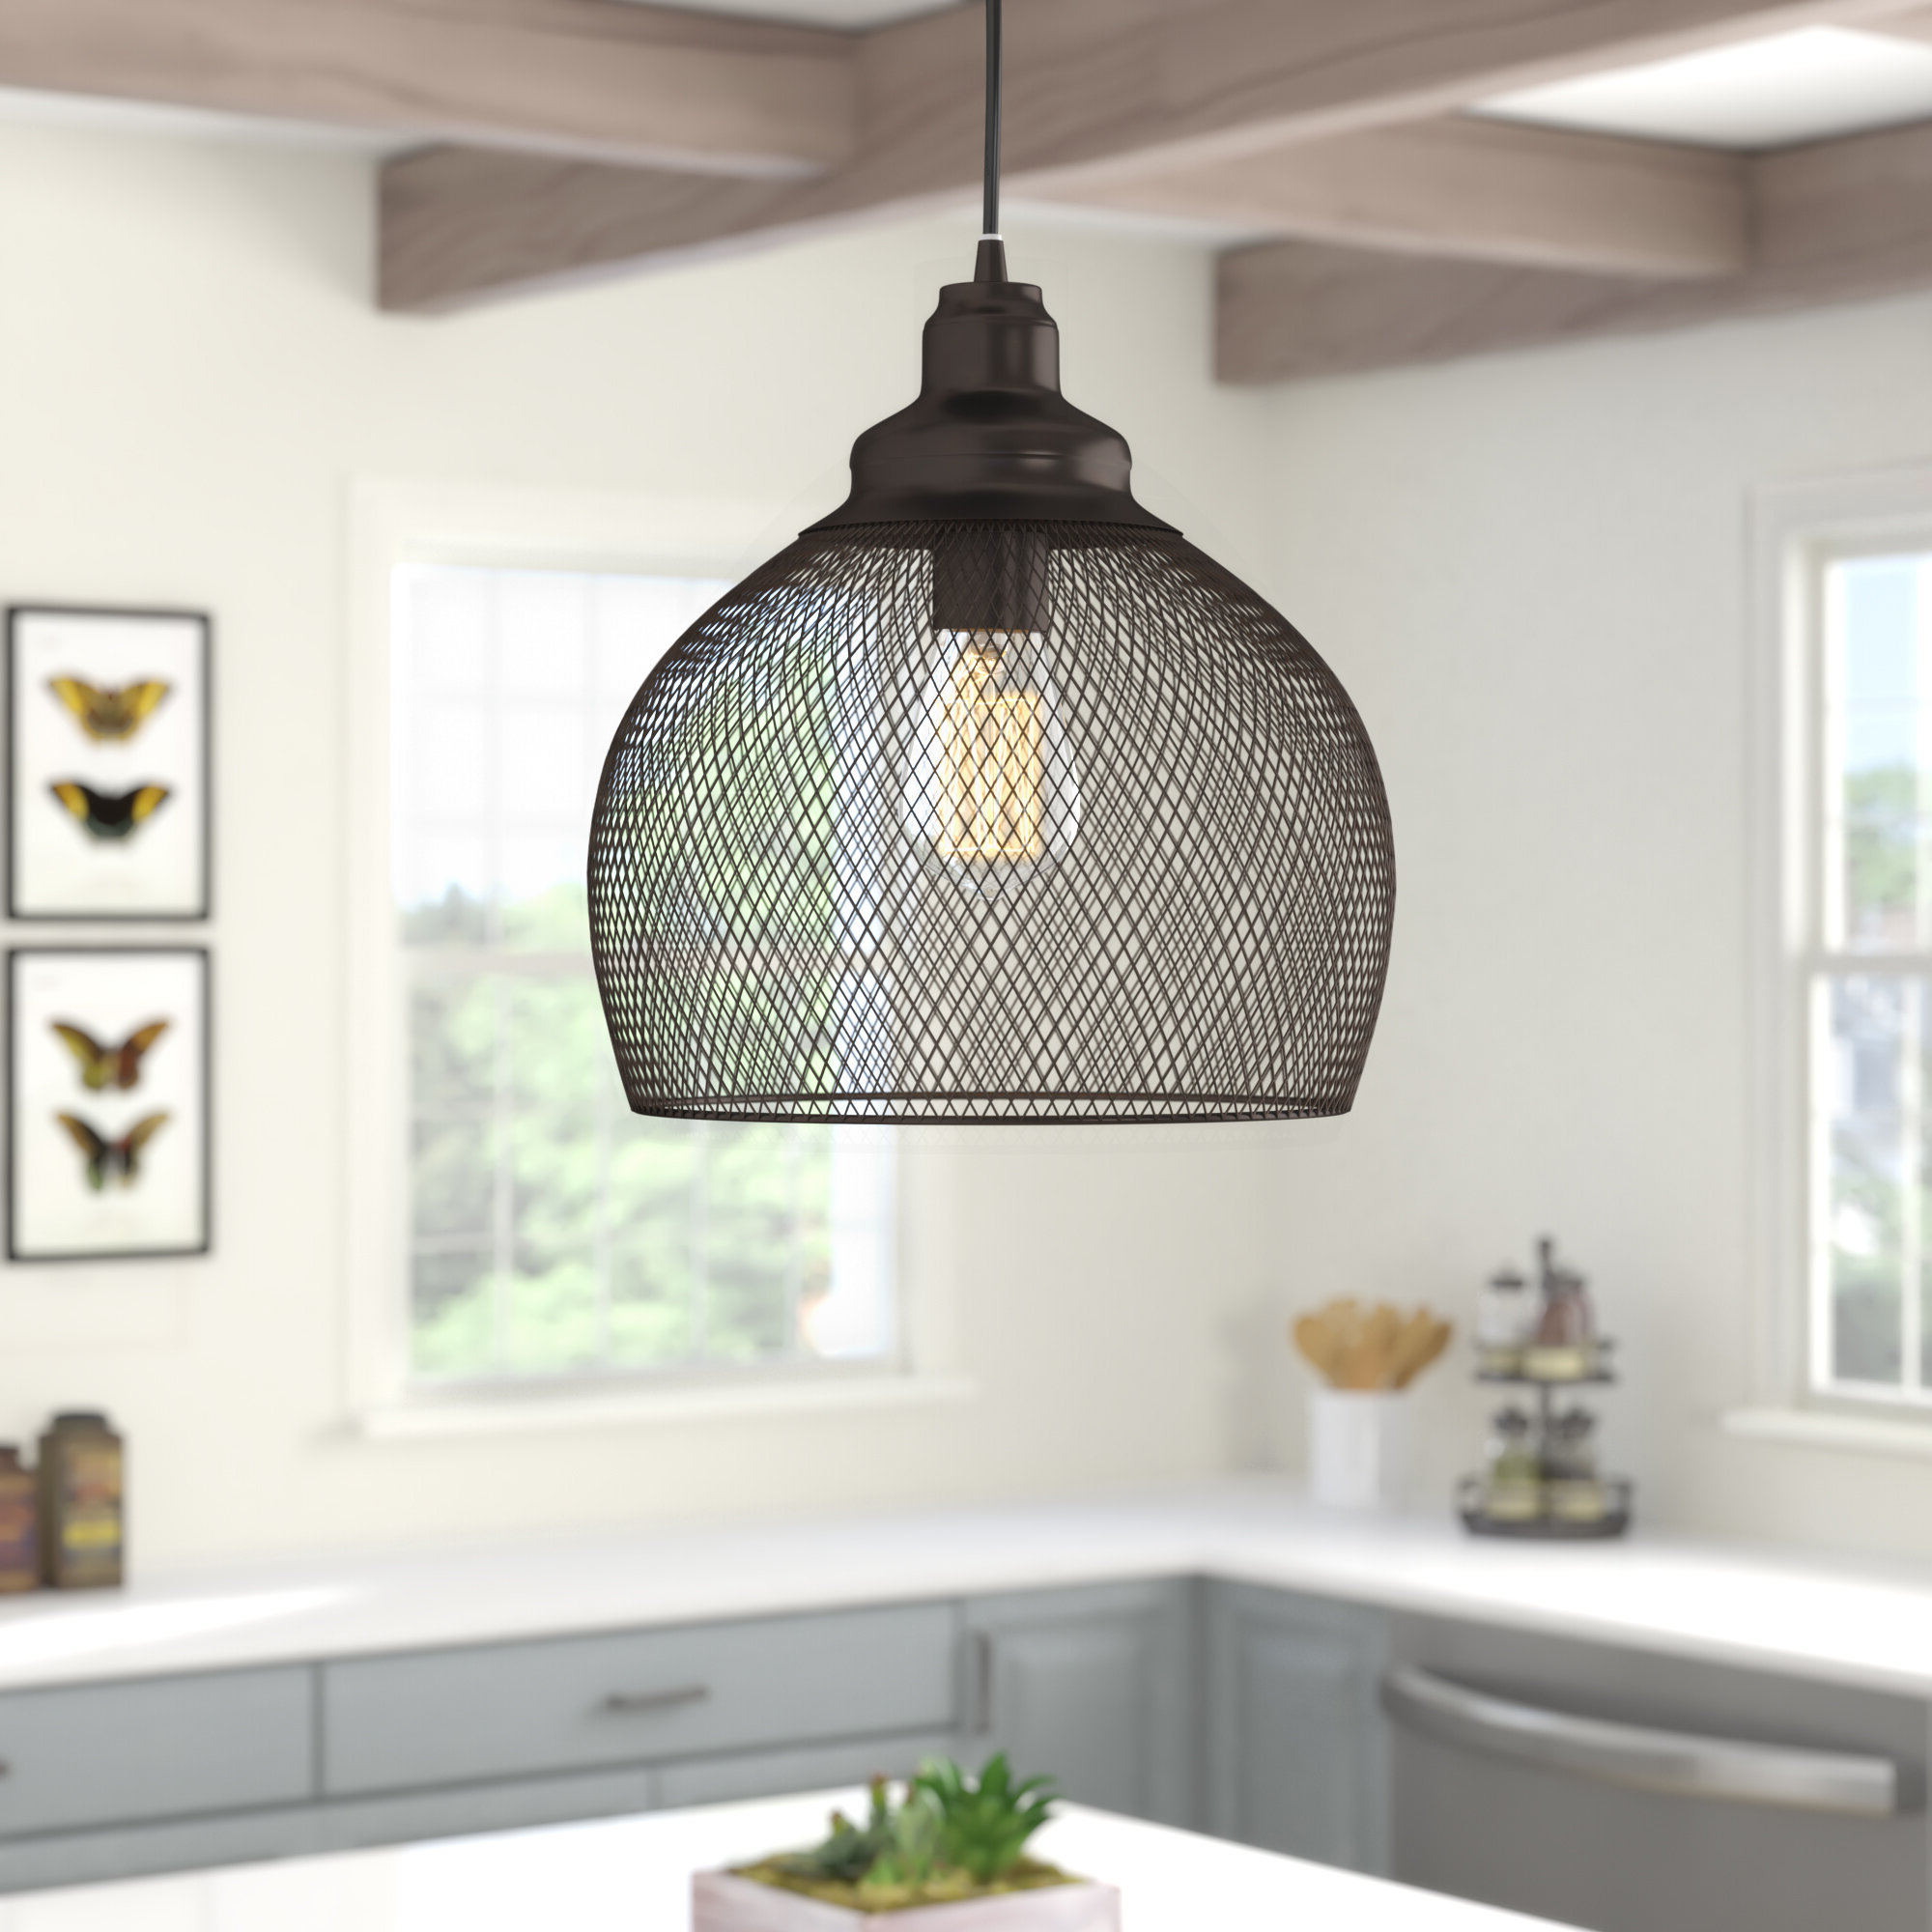 1 Light Single Dome Pendants In Well Known Ryant 1 Light Single Dome Pendant (View 12 of 25)